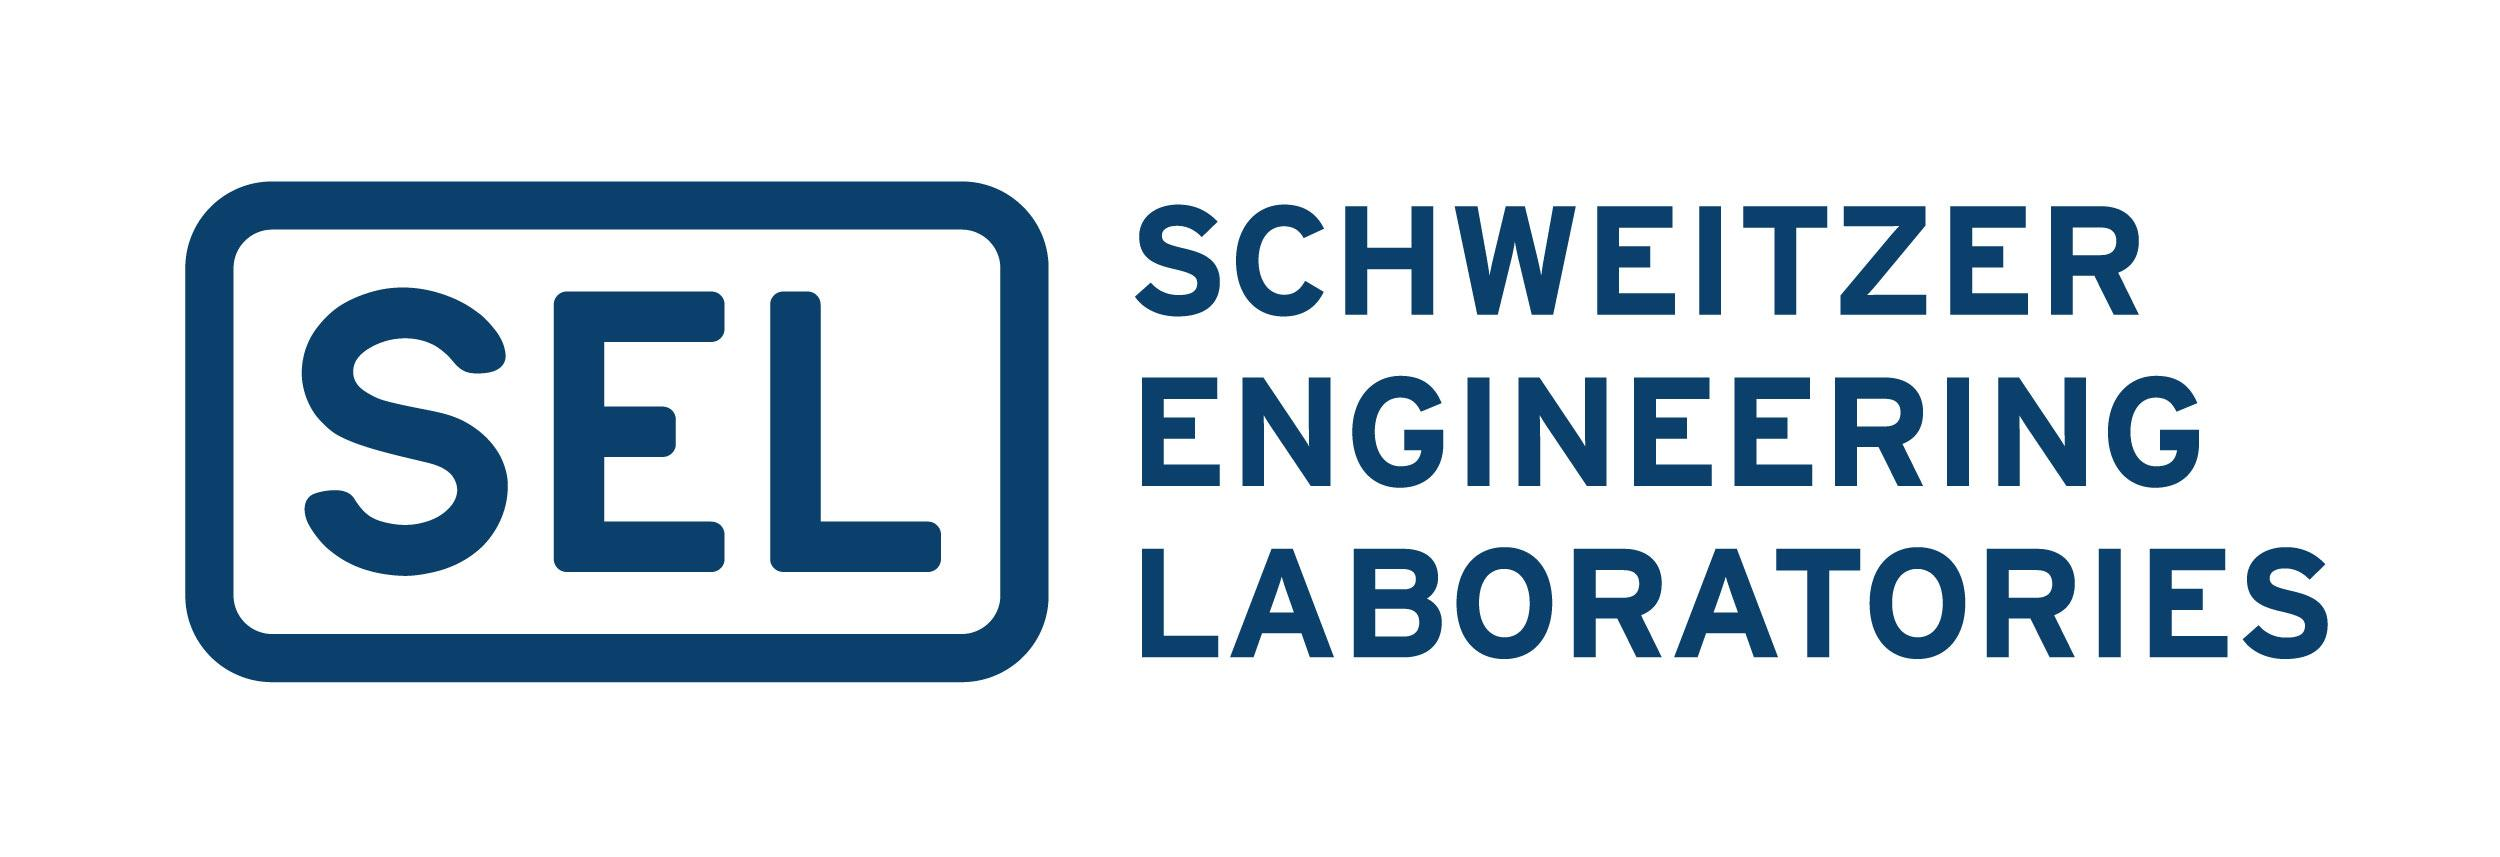 Schweitzer Engineering Labortories Microgrid Knowledge